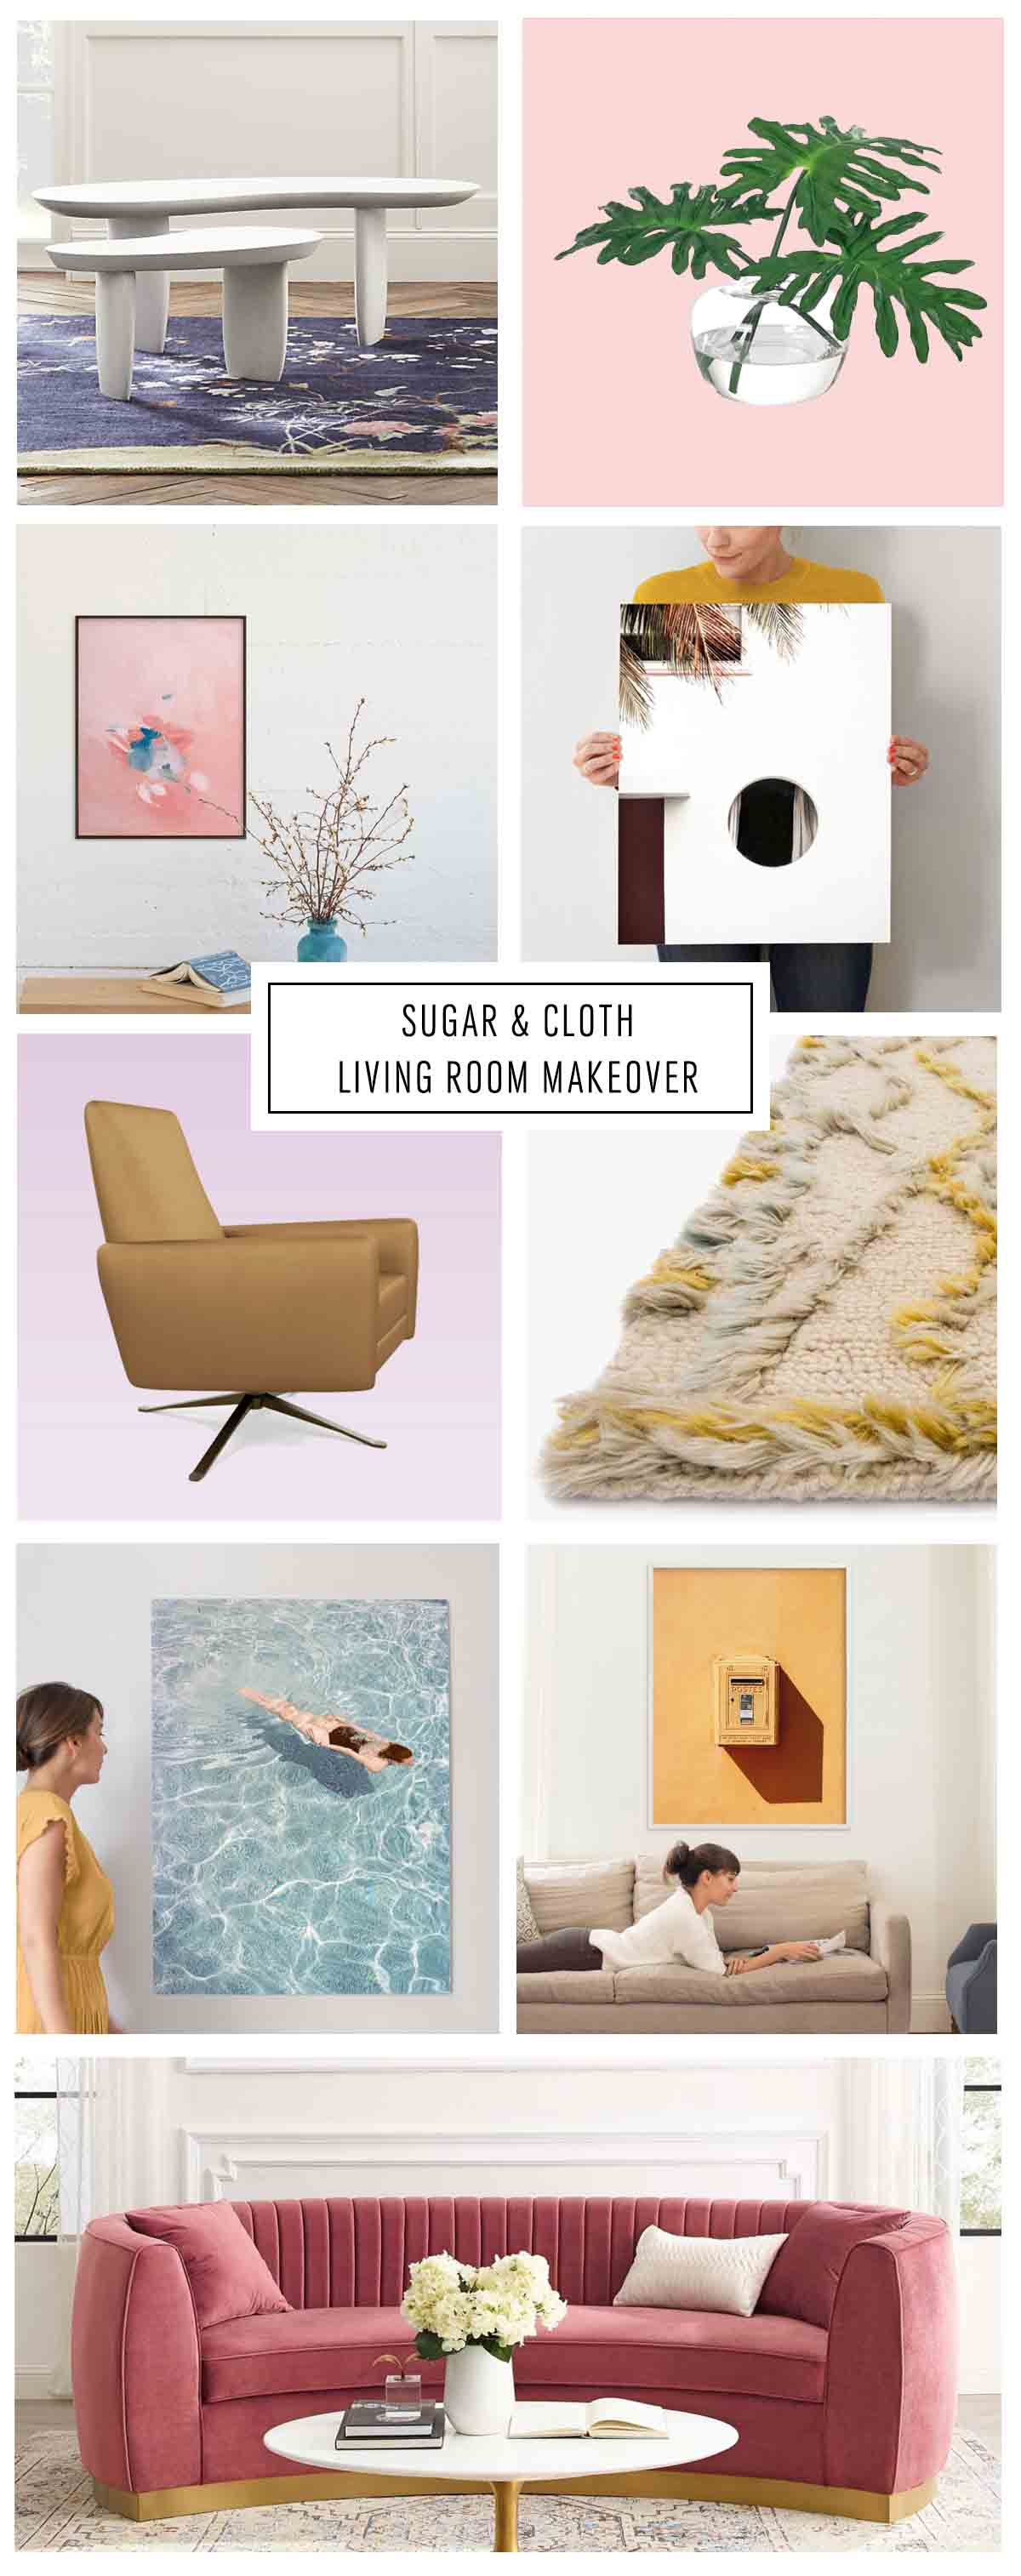 Sugar & Cloth Living Room by top Houston lifestyle blogger Ashley Rose of Sugar & Cloth One Room Challenge